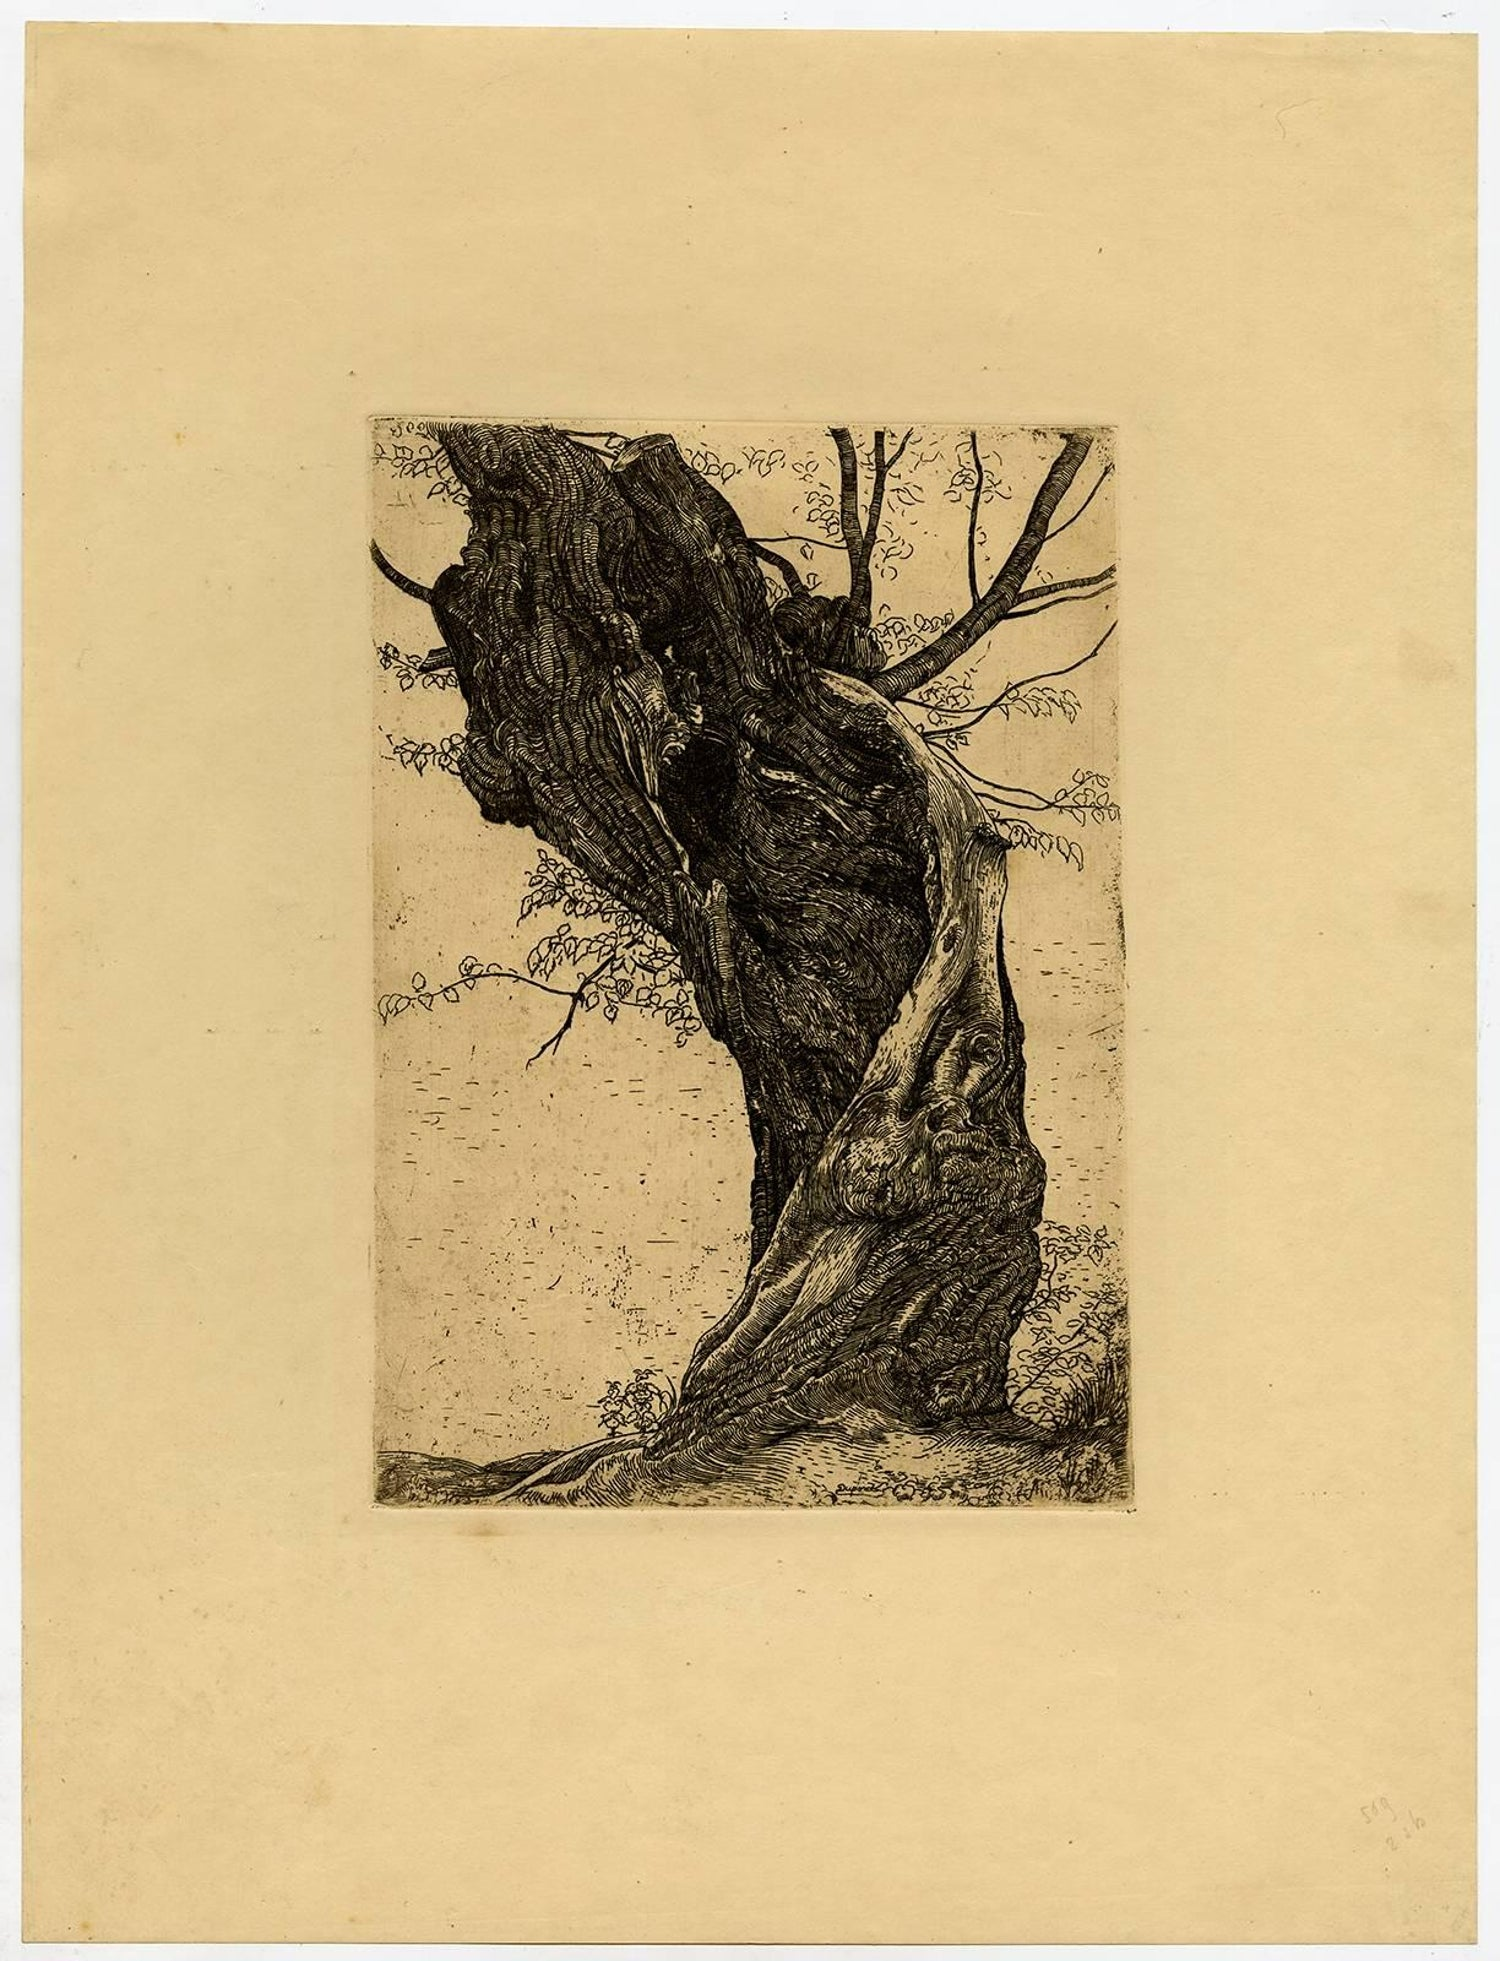 Pieter Dupont - Untitled - Large willow tree., Print For Sale at 1stdibs